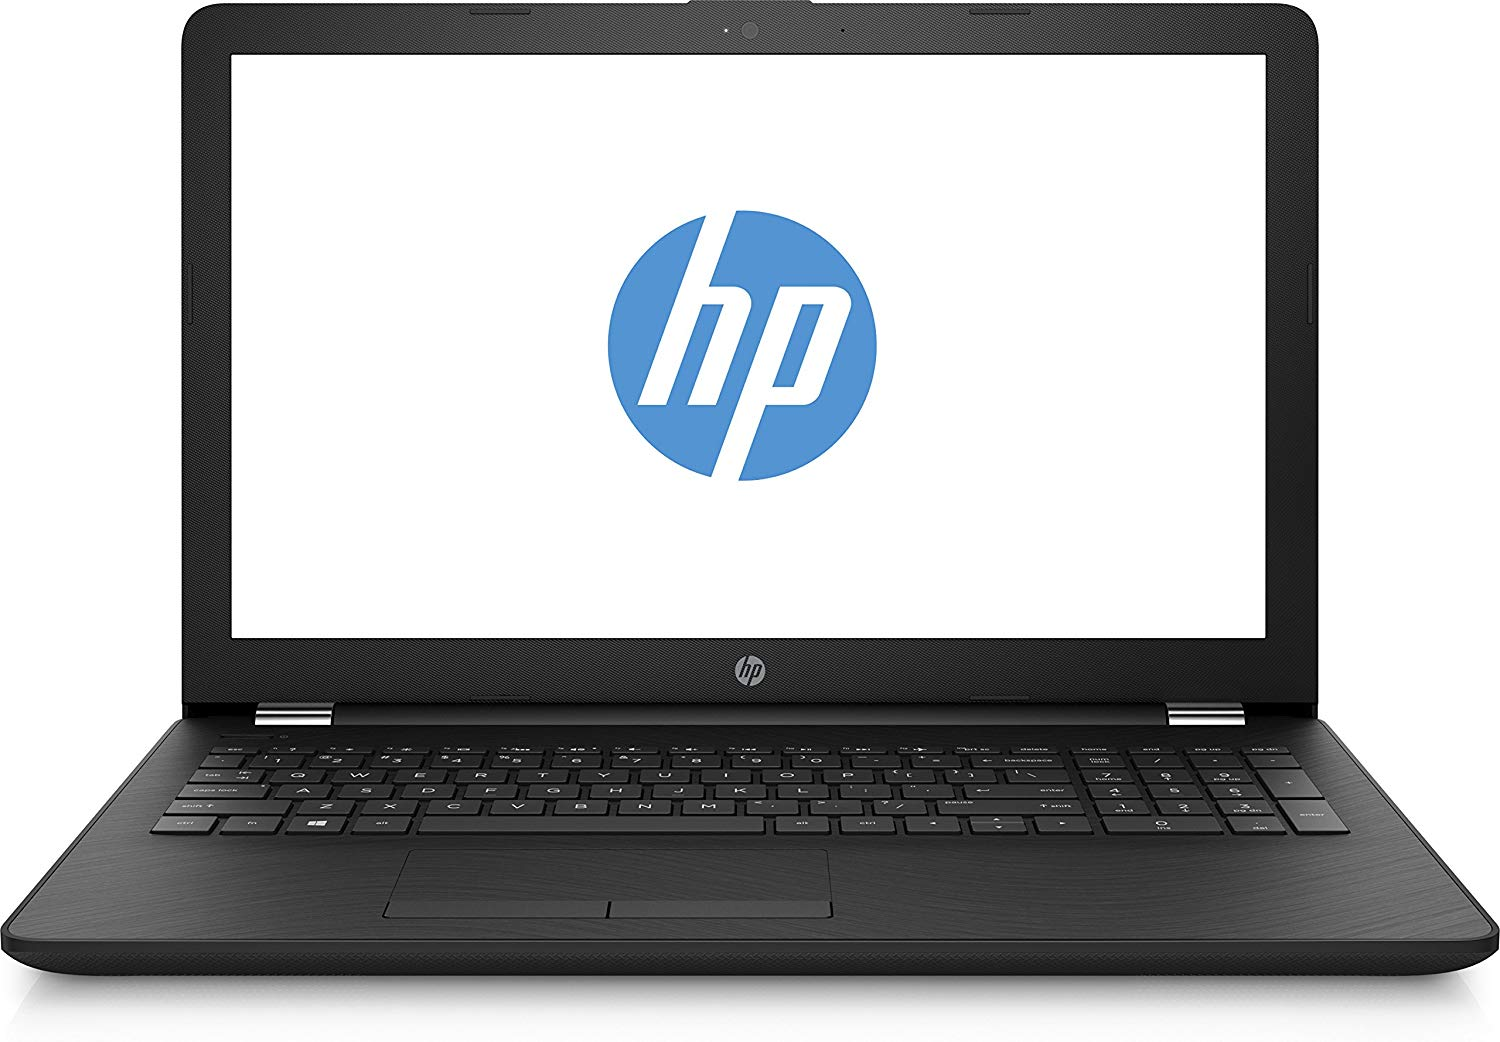 HP Notebook 15- BS179TX (INTEL CORE I5 8th Gen (8250U)/ 8GB RAM / 1TB HDD /DOS/ 39.62 cm(15.6) diagonal FHD SVA anti-glare / AMD Radeon